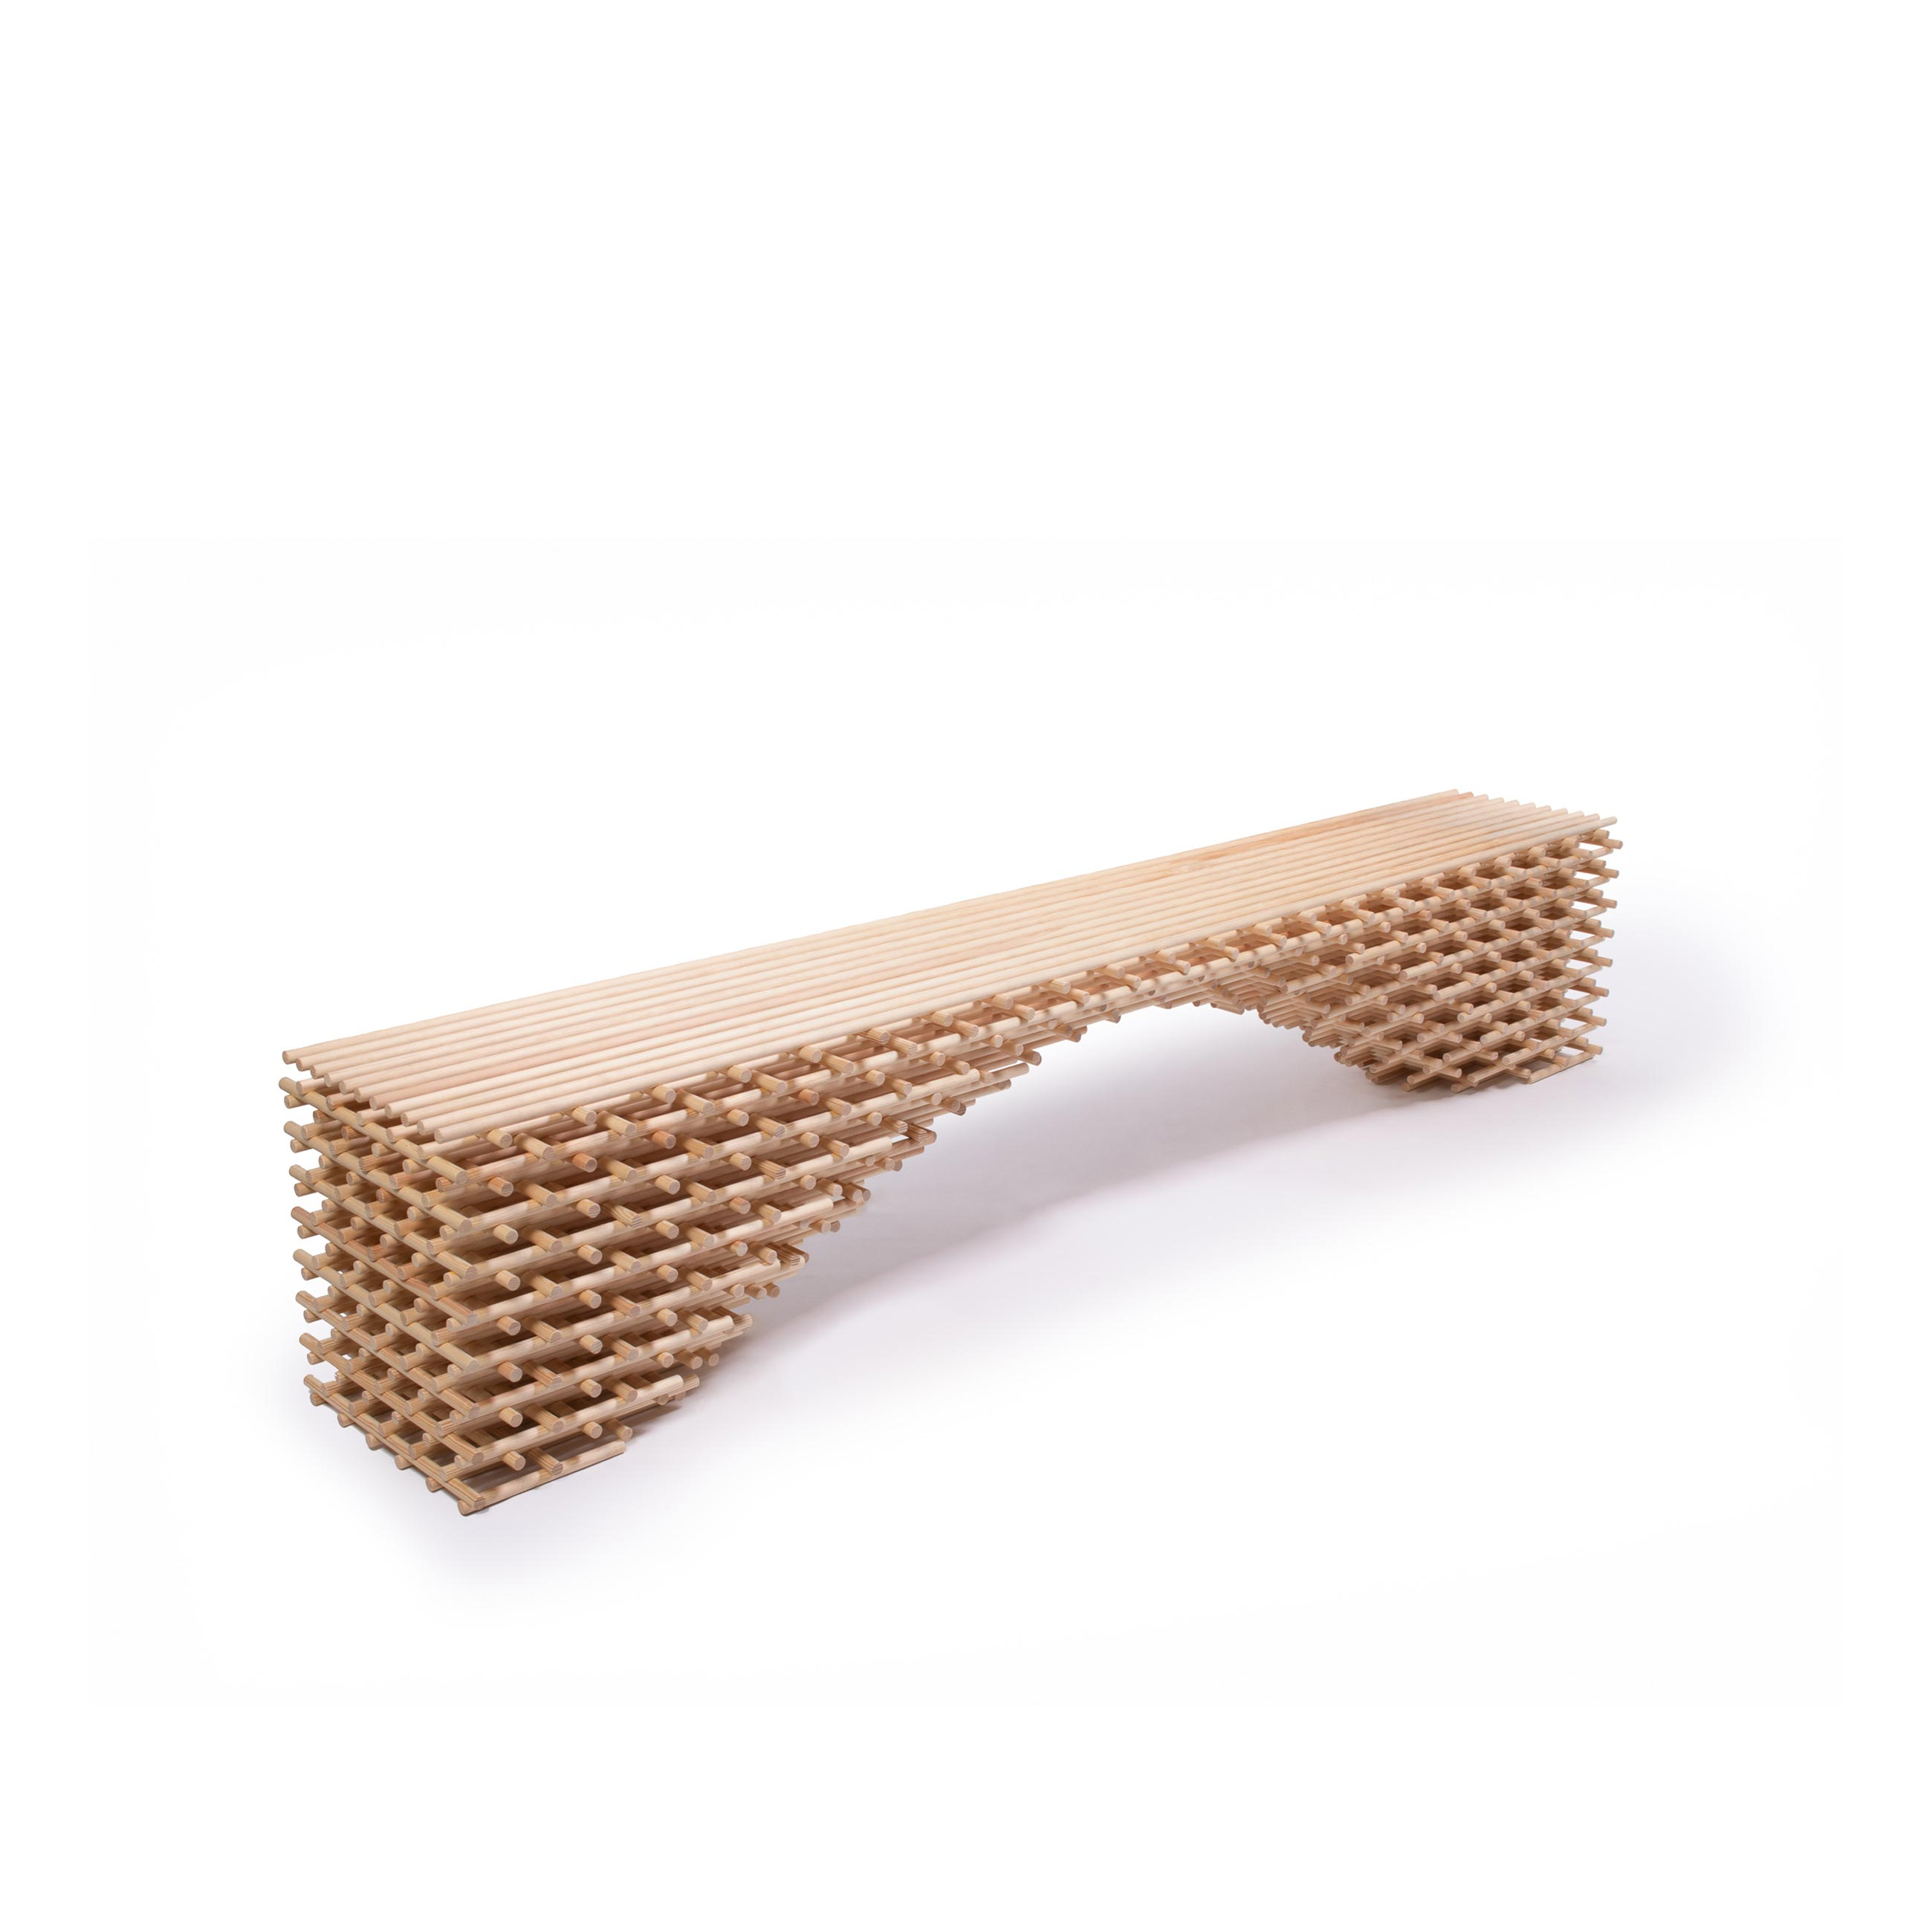 "Brodie Neill Latitude Bench - Longstanding champion of upcycling waste into new material streams, Brodie has reused 422 dowels to create a sculptural bench, ""Latitude"". Handcrafted in Brodie's East London studio, ""Latitude"" uses a lattice-like technique reminiscent of traditional Japanese bamboo constructions where linear elements are bound together to create seemingly simple scaffolding-like structures.Exhibited at Sketch for London Design Week.